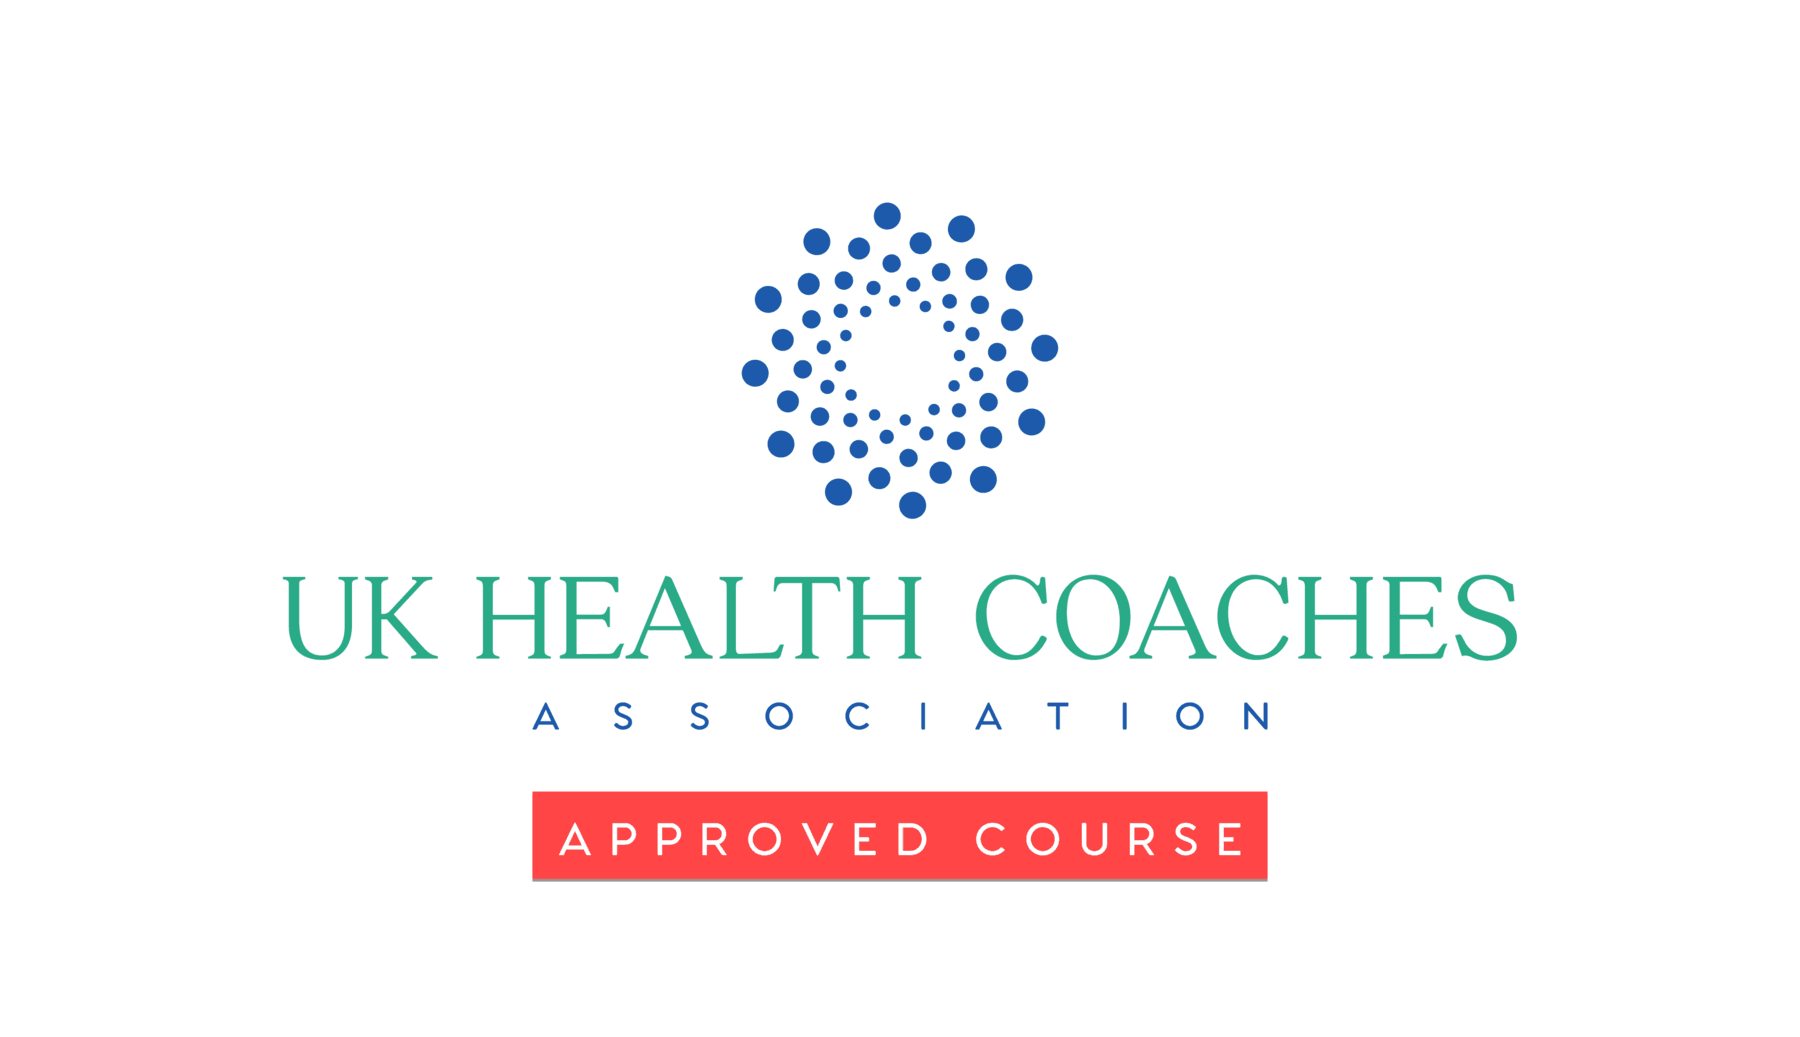 UKHCA approved course logo